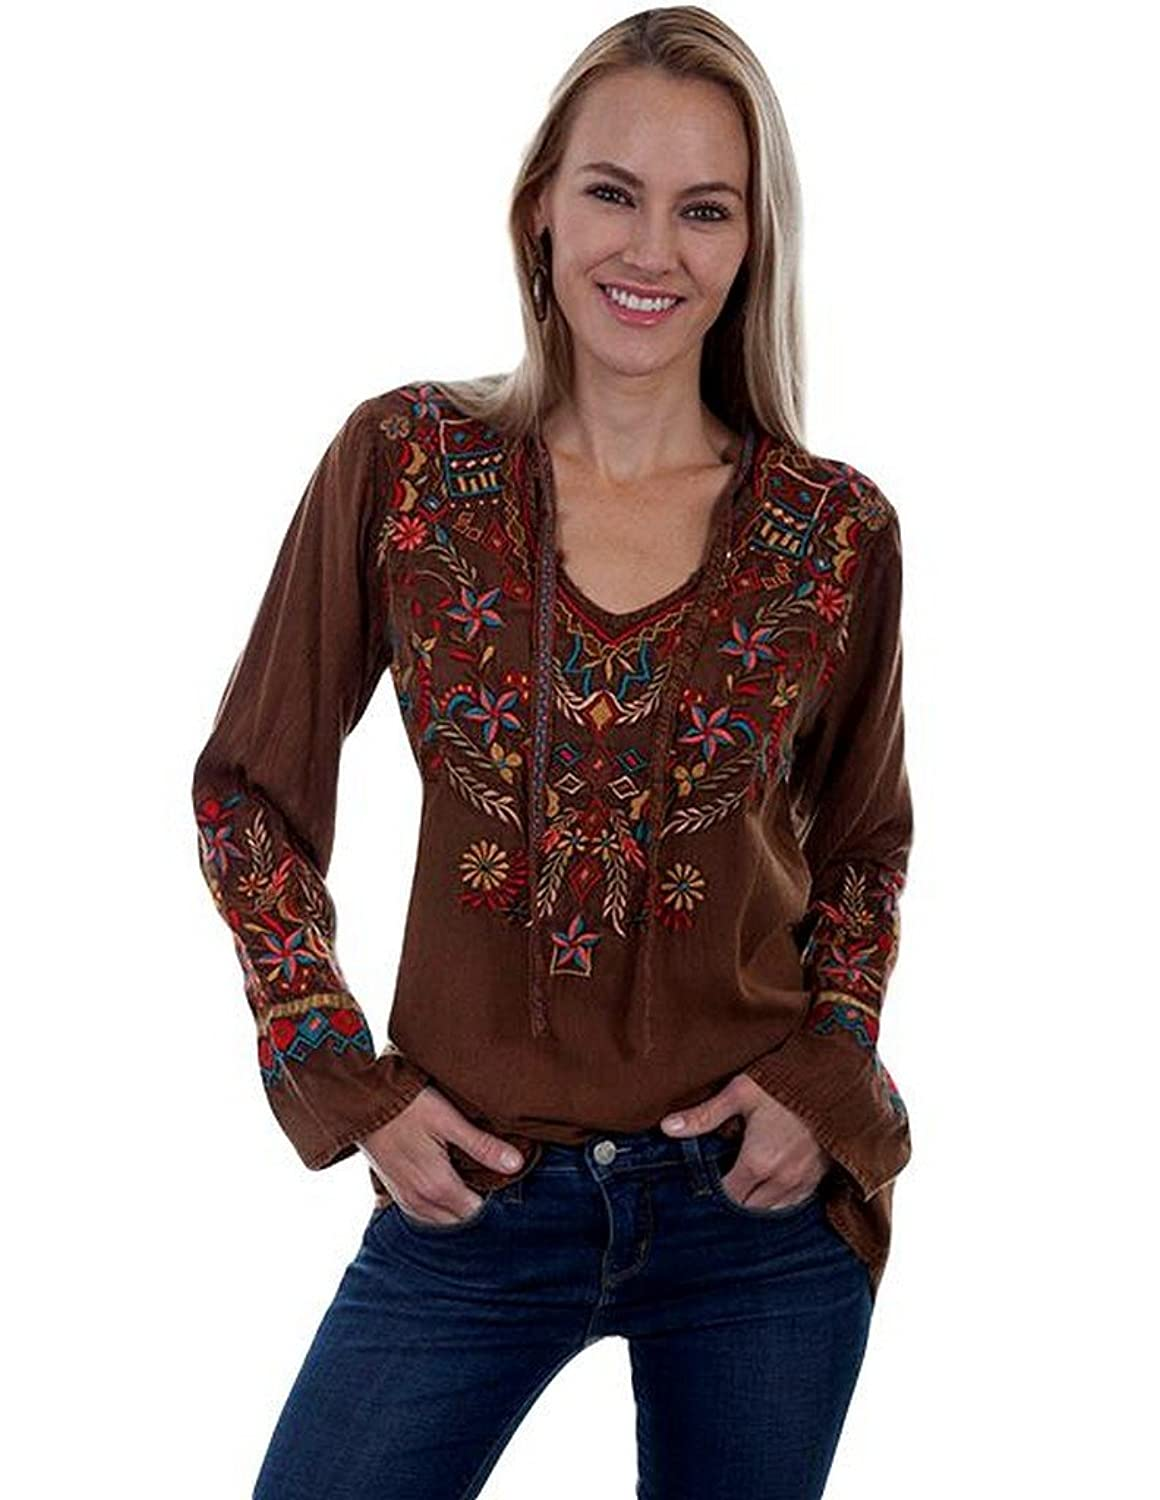 Women's 70s Shirts, Blouses, Hippie Tops Scully Womens Bennington Boho Embroidered Fun Blouse $90.00 AT vintagedancer.com